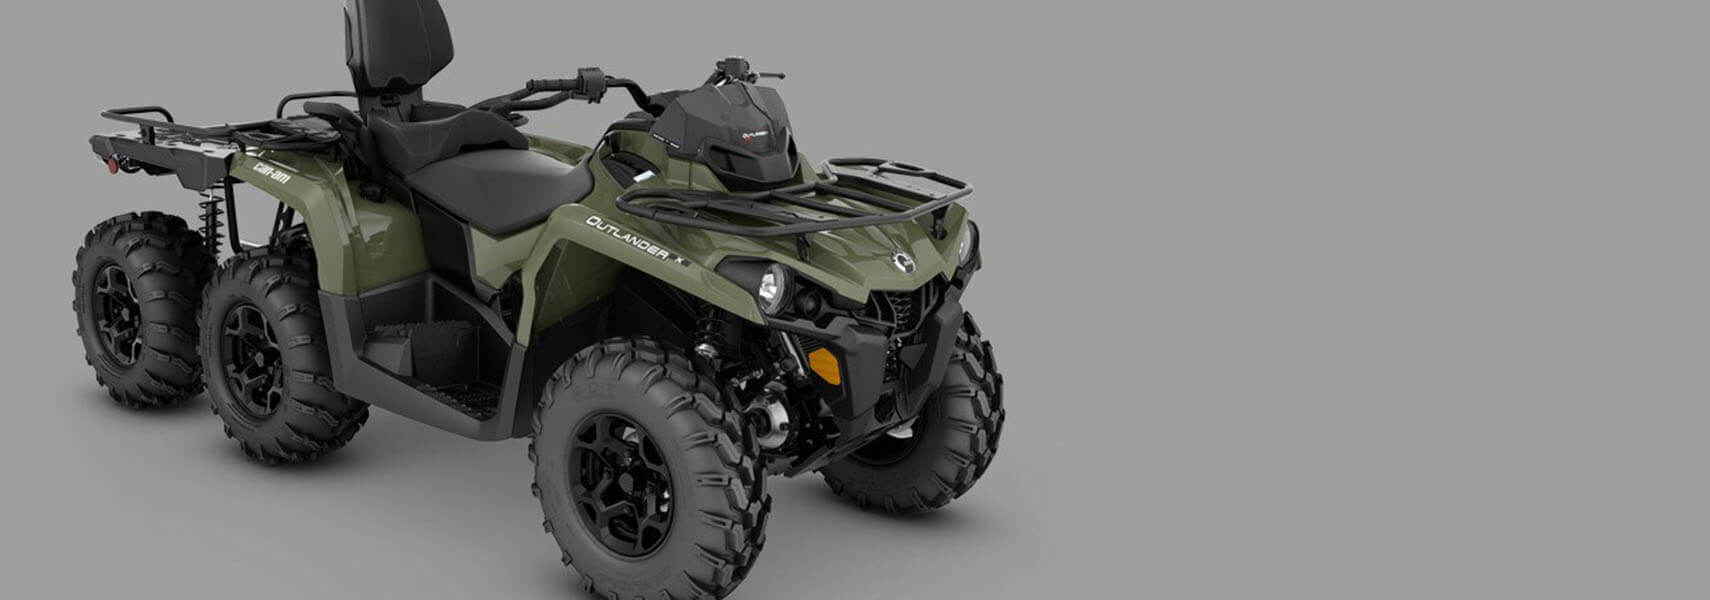 Can-Am ATV - 2020 OUTLANDER 6X6 PRO + 450 T